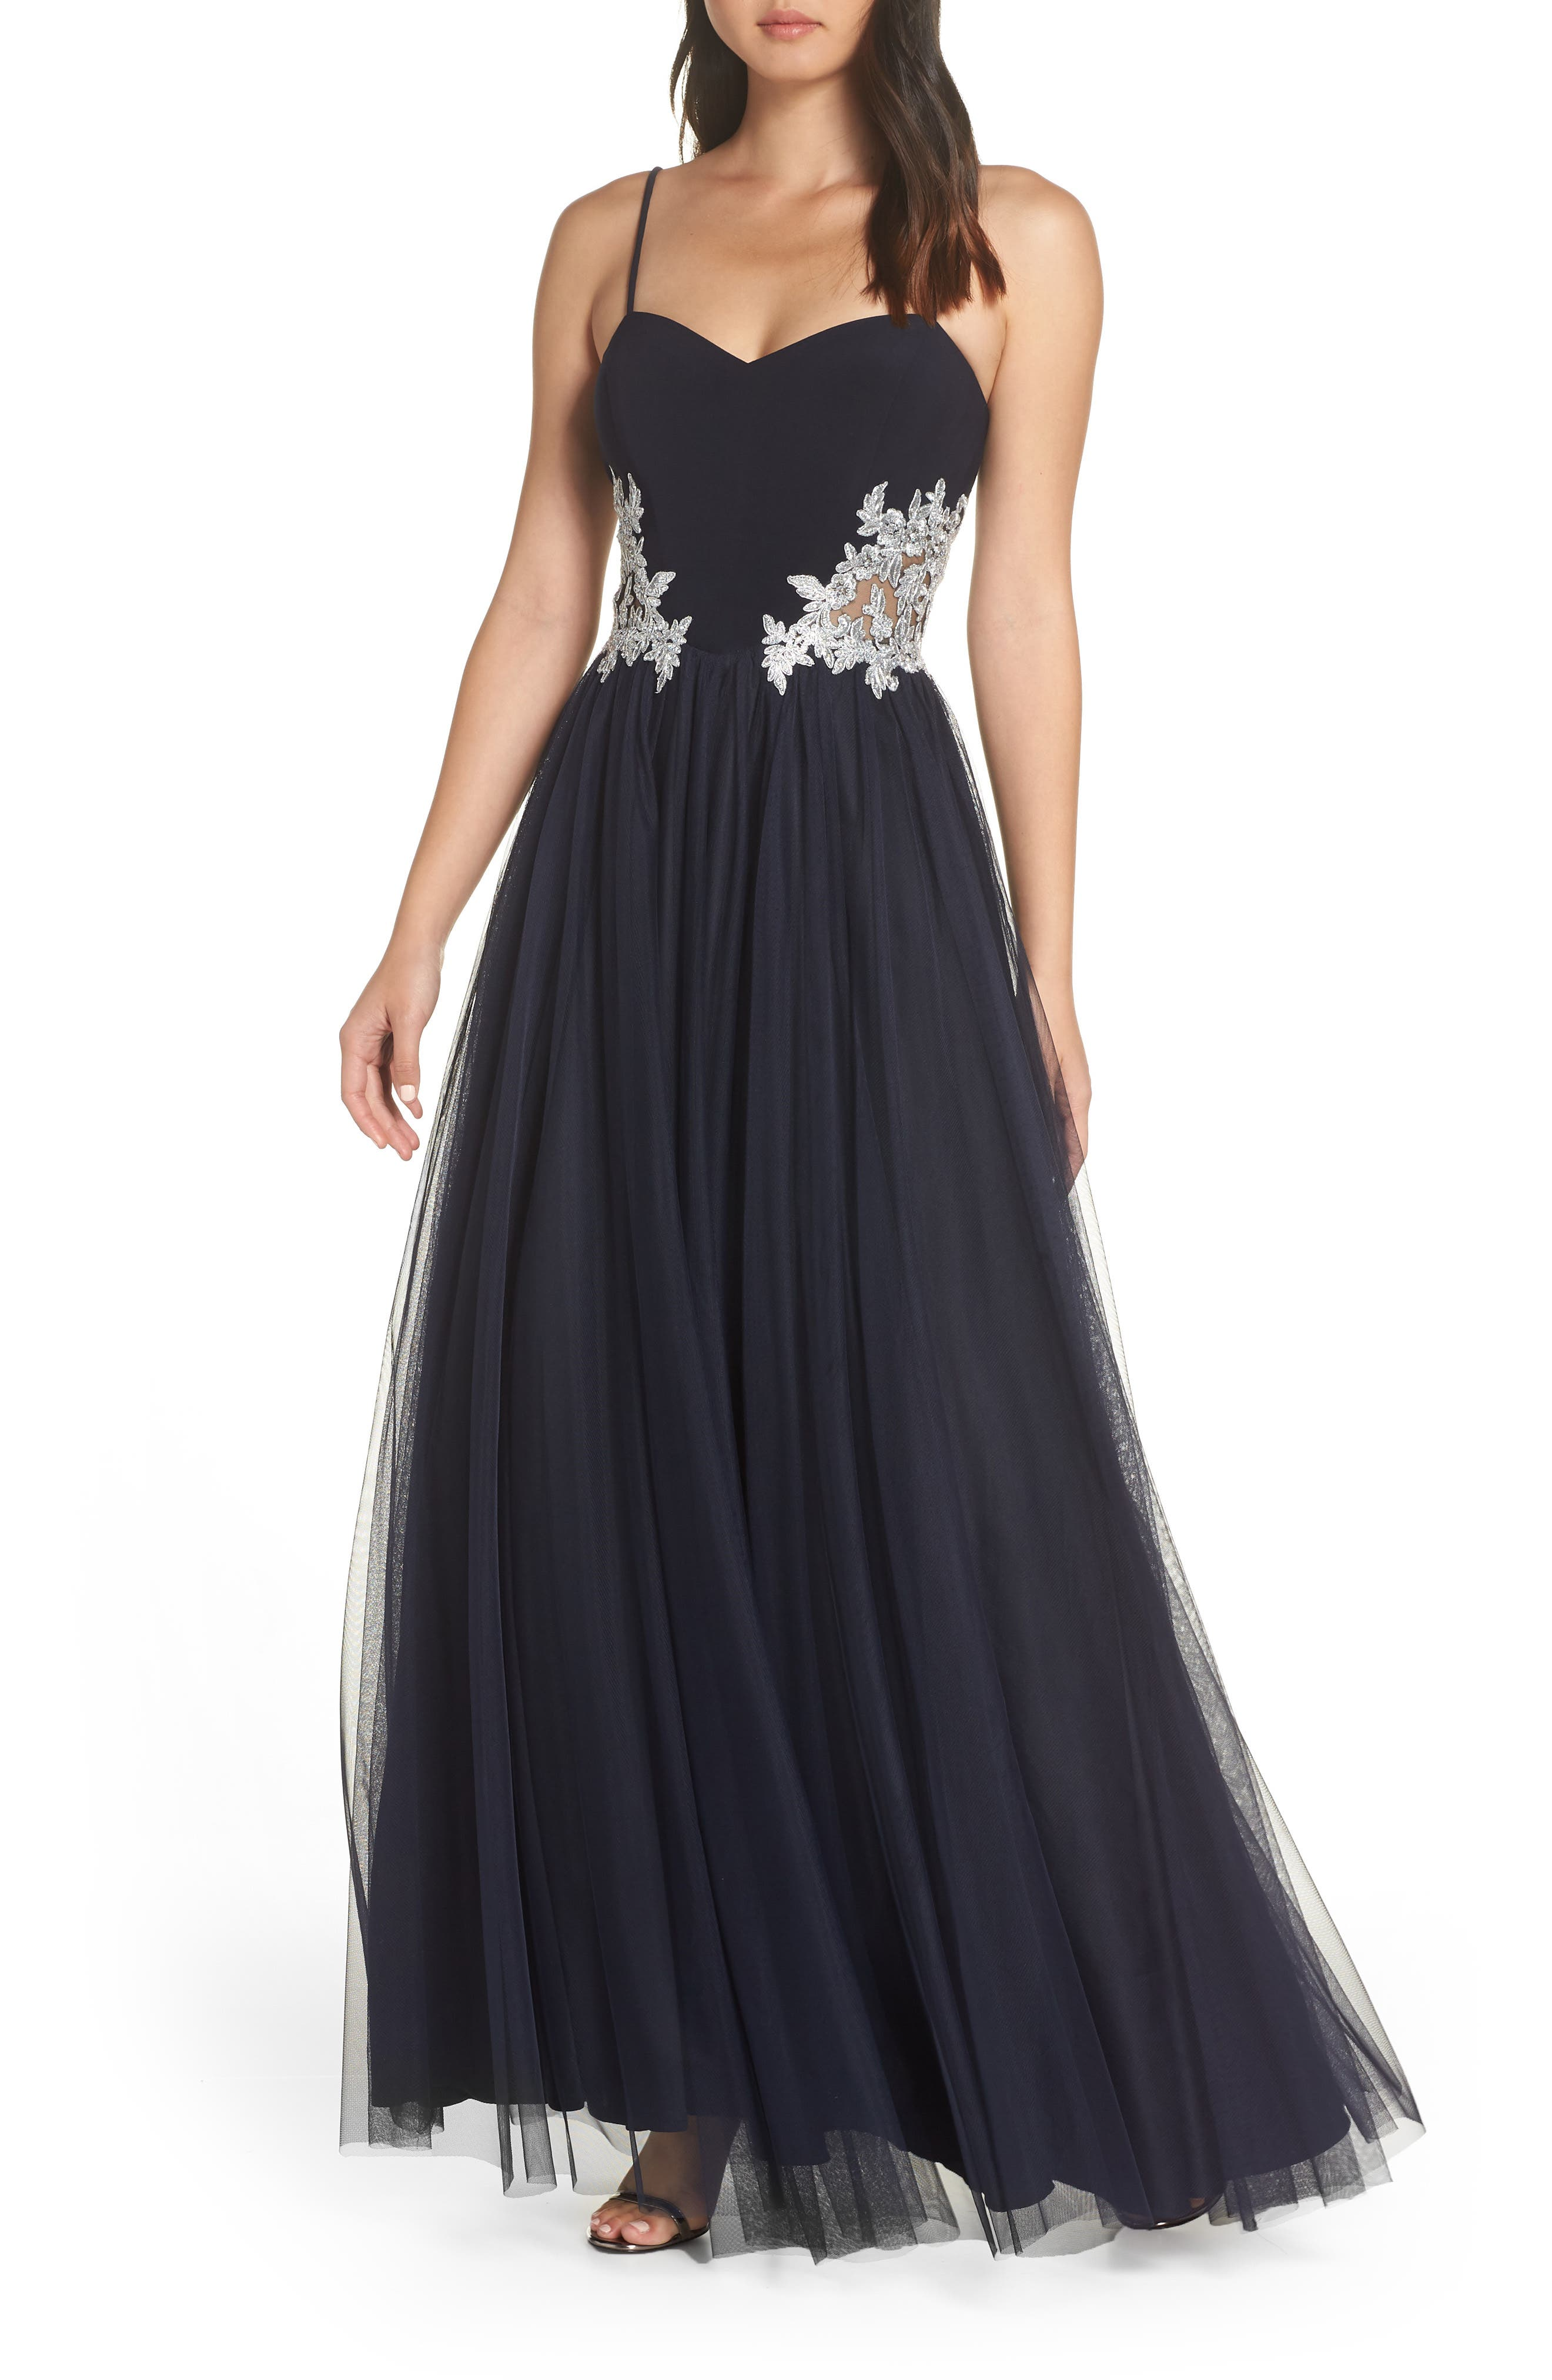 Blondie Nights Embellished Tulle Gown,                             Main thumbnail 1, color,                             NAVY/ SILVER